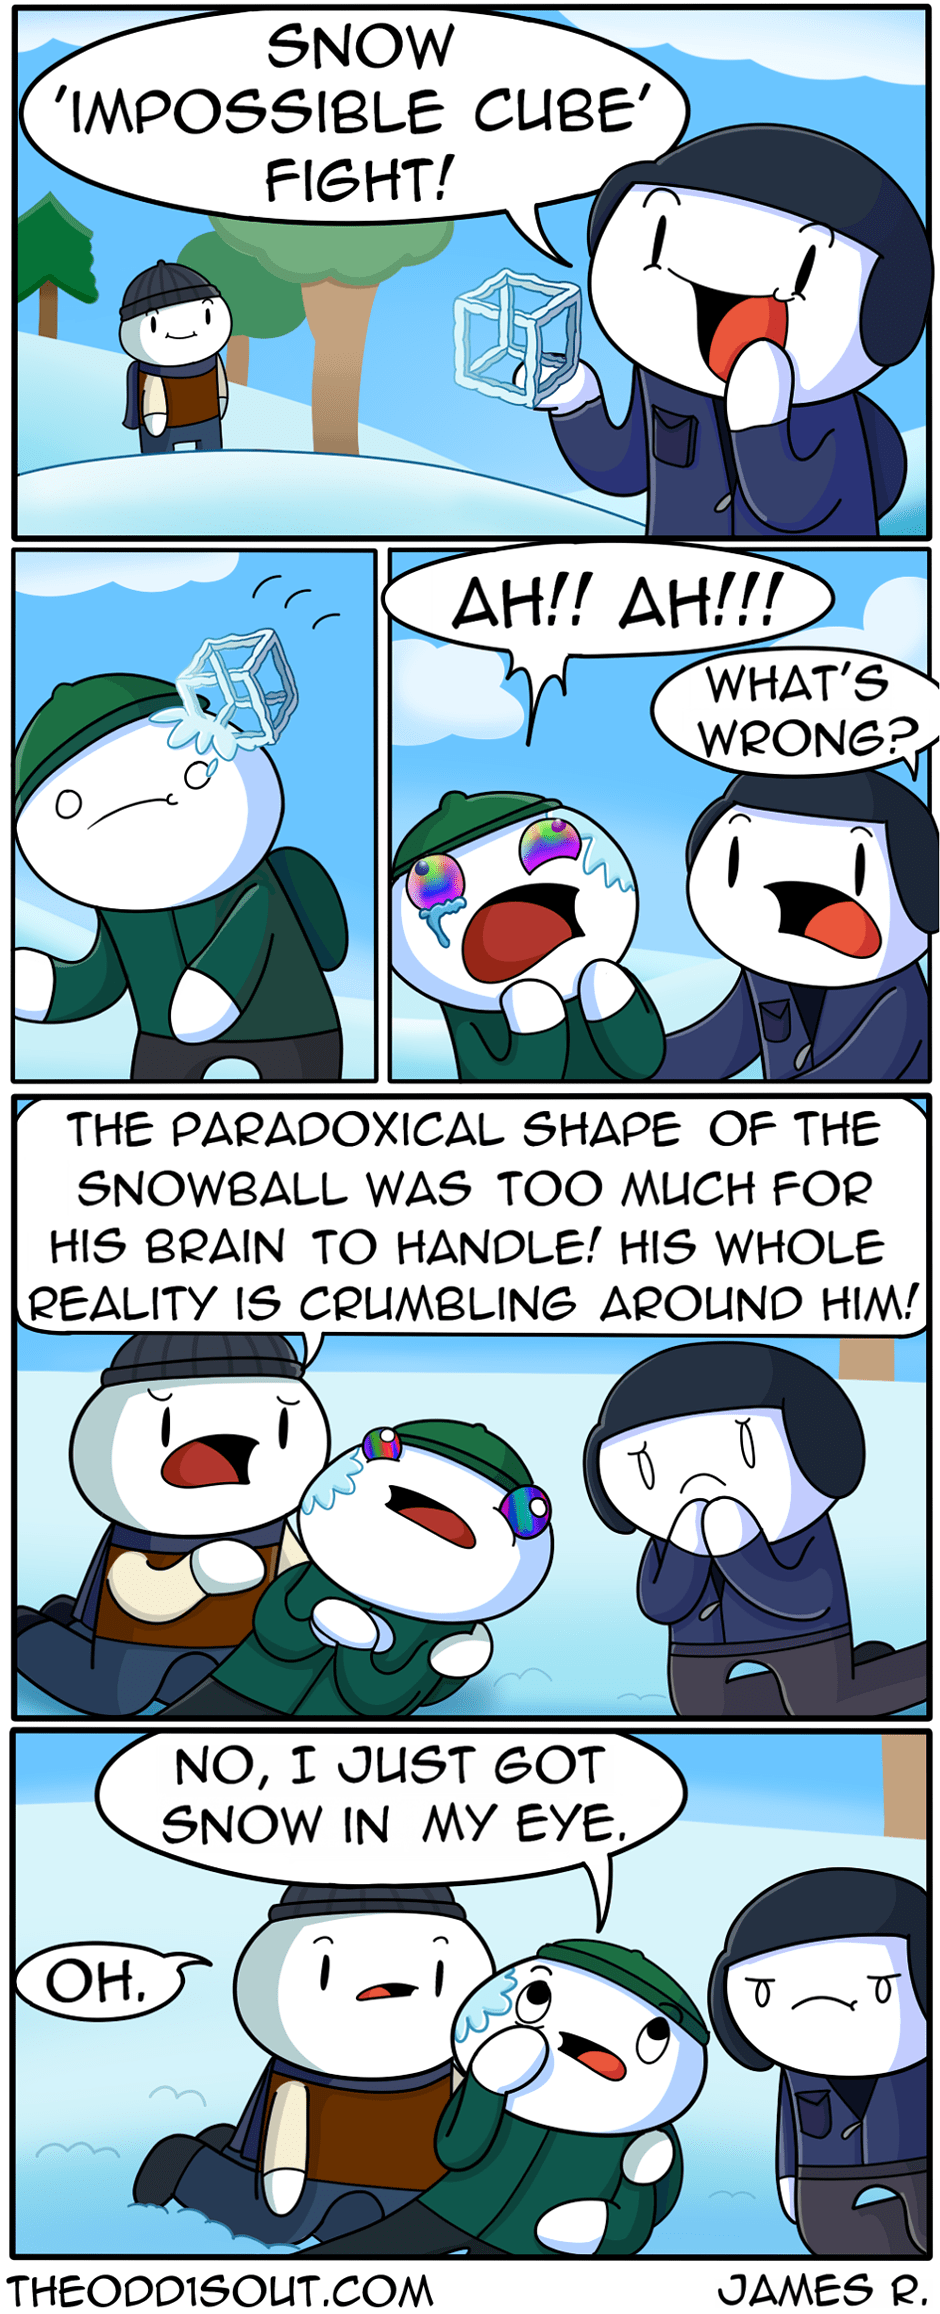 Impossible Cube Fight Funny comics, Witty comics, Funny